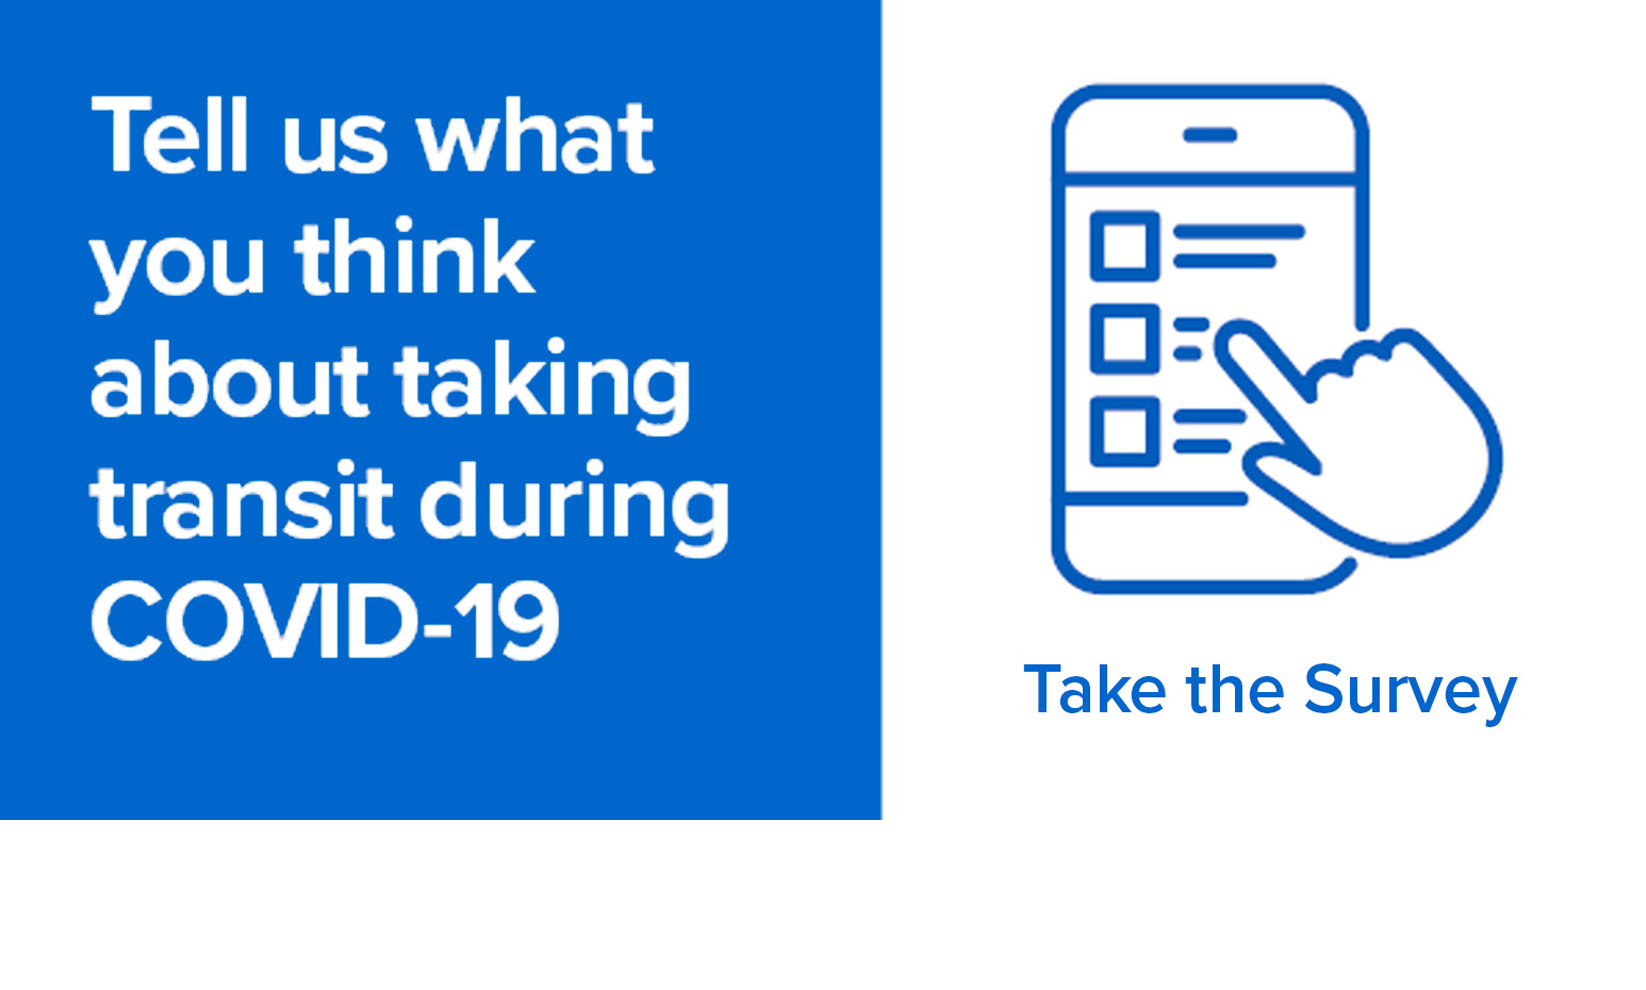 Tell us what you think about riding transit during COVID-19